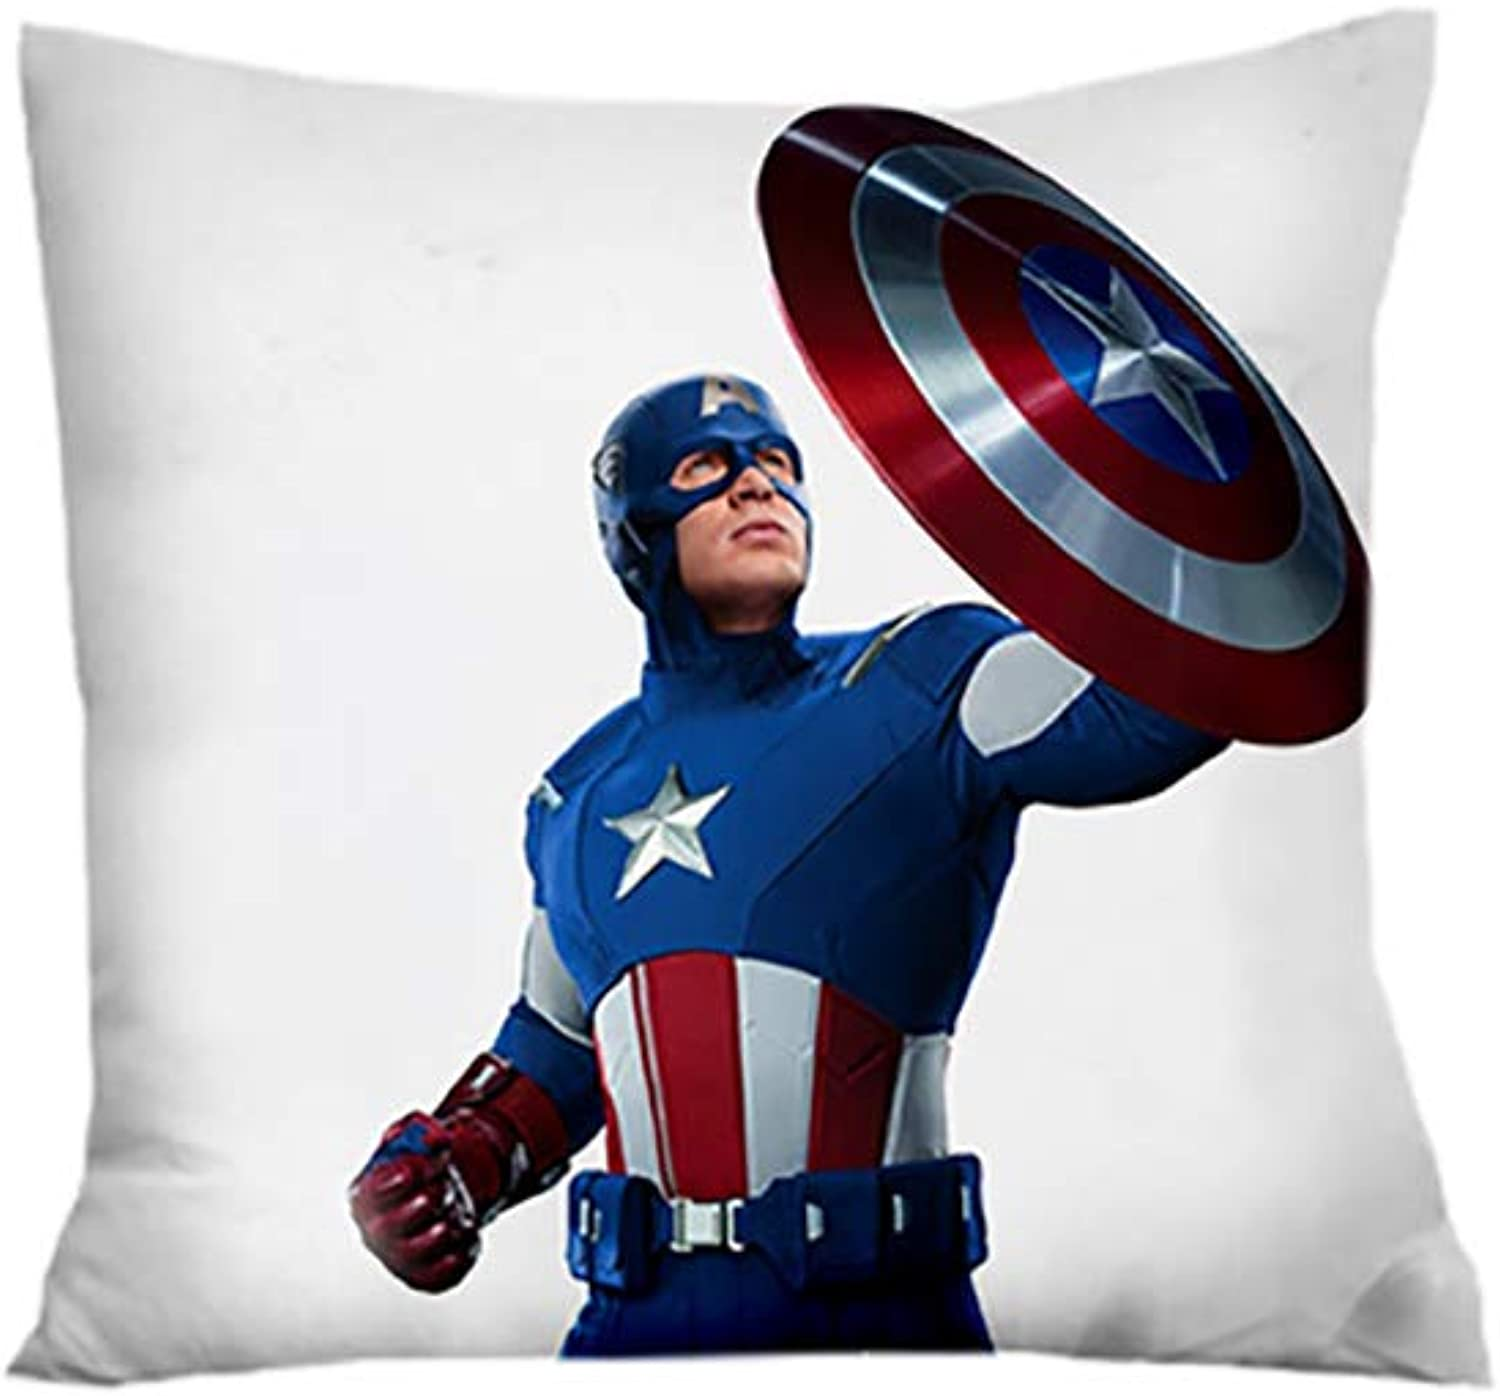 Pillow Pillow Model Toy Toy Ornaments Movie Character Pattern Pillow Pillow Toy Birthday Gift M 4545cm